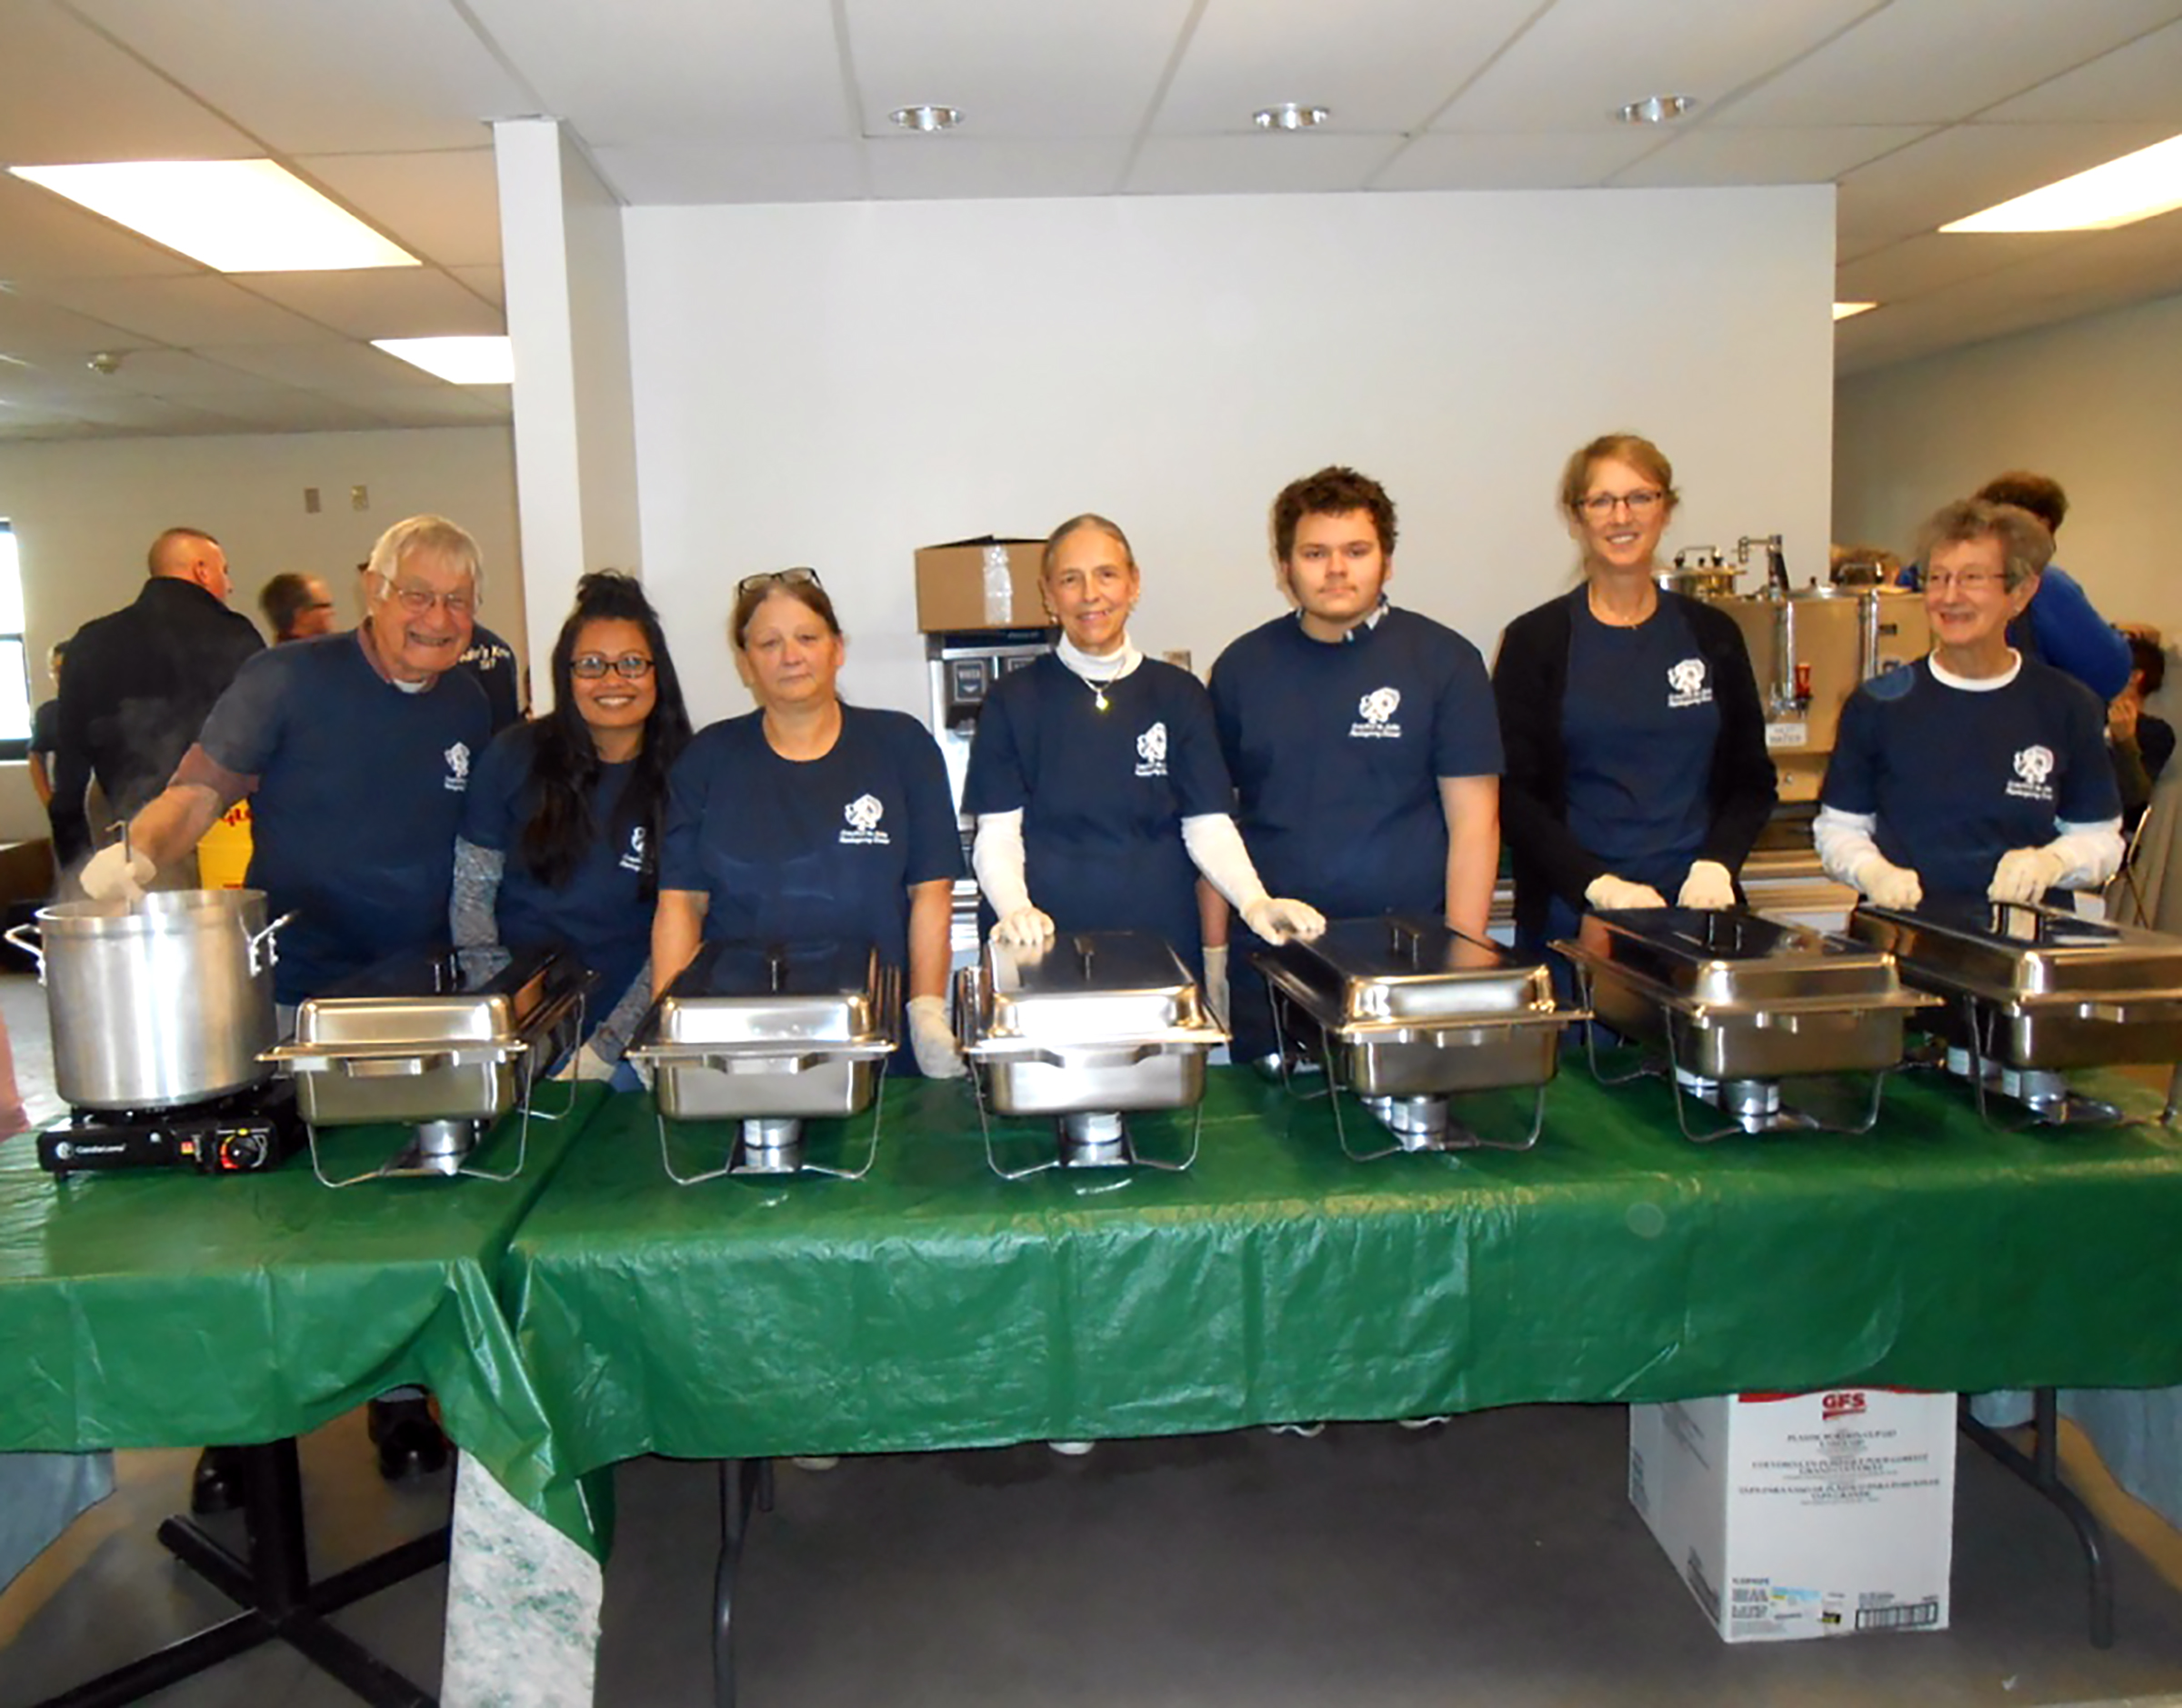 Above, volunteers, who served up hot food items for home delivered meals, are pictured together at the Grayling Army Airfield dining hall.